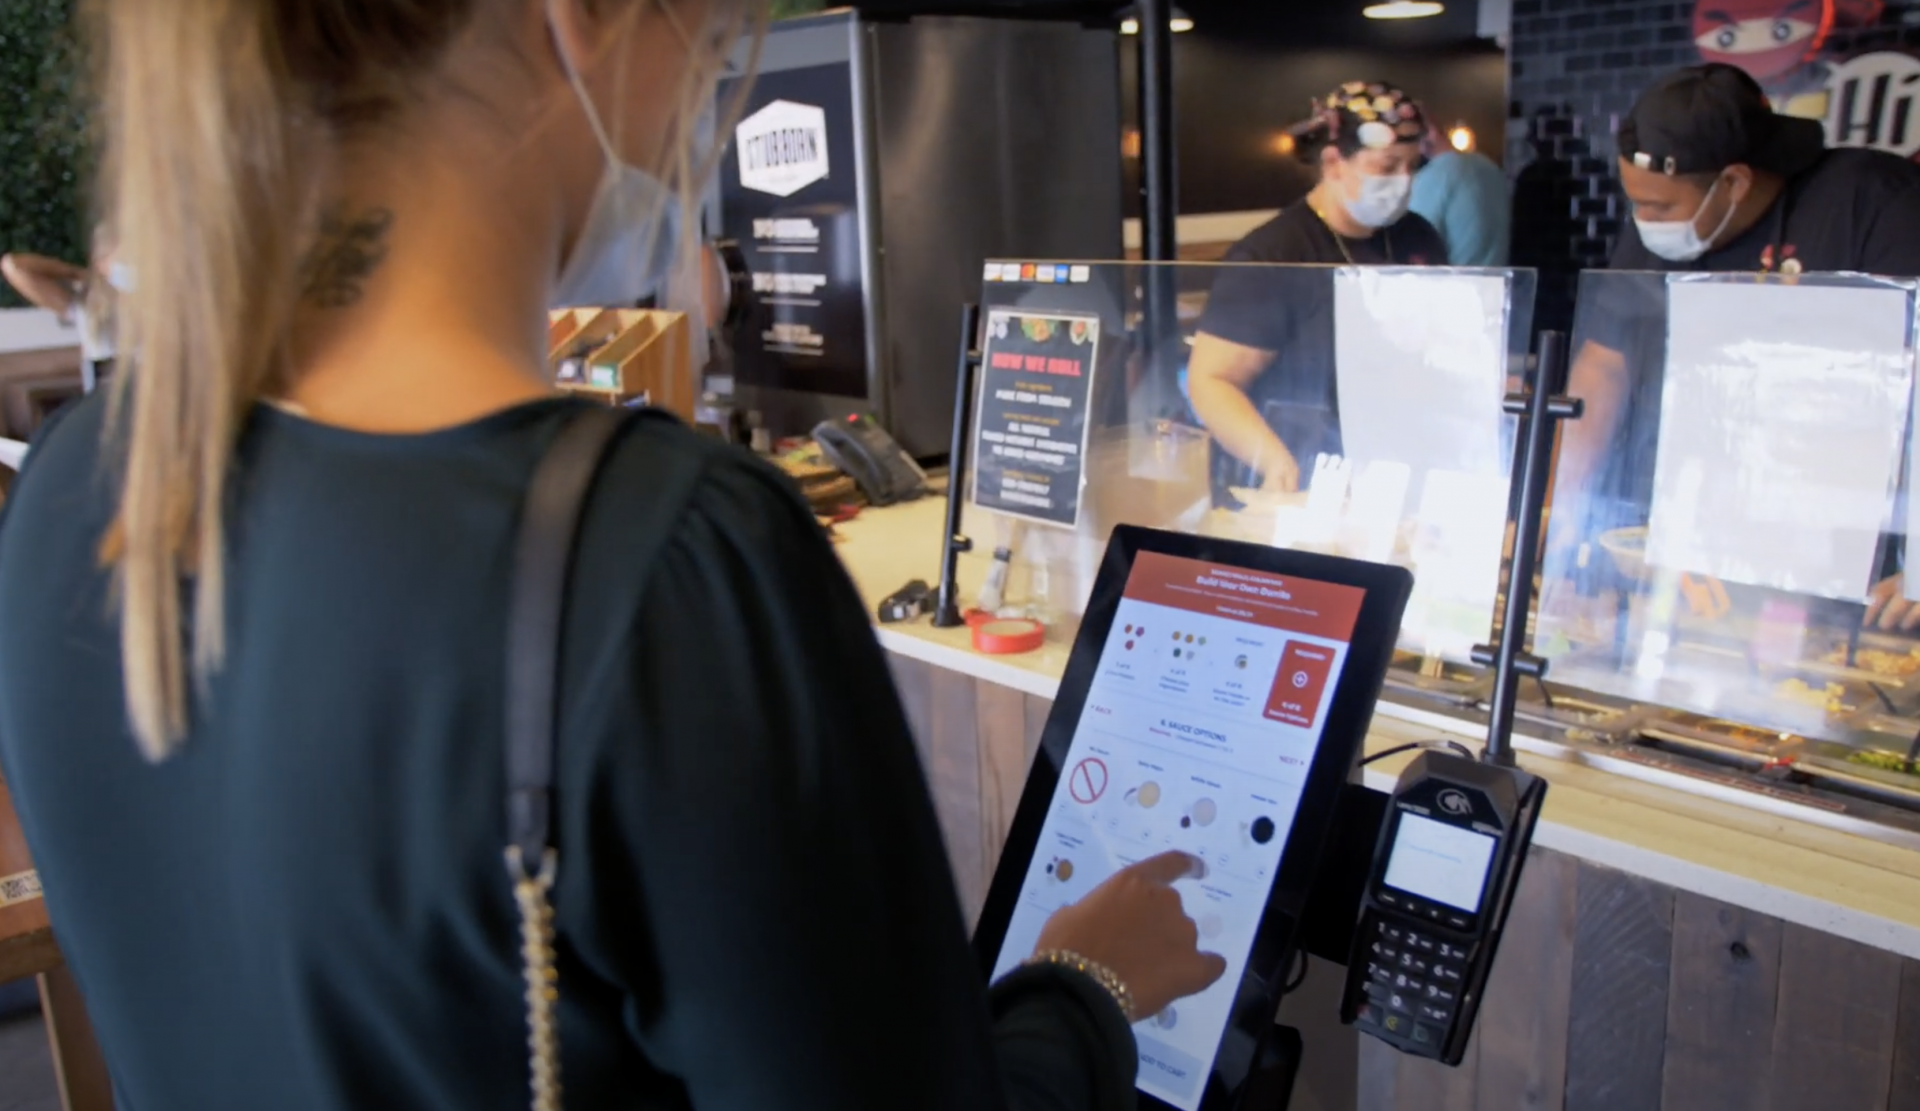 Customer using a self-ordering kiosk in a restaurant